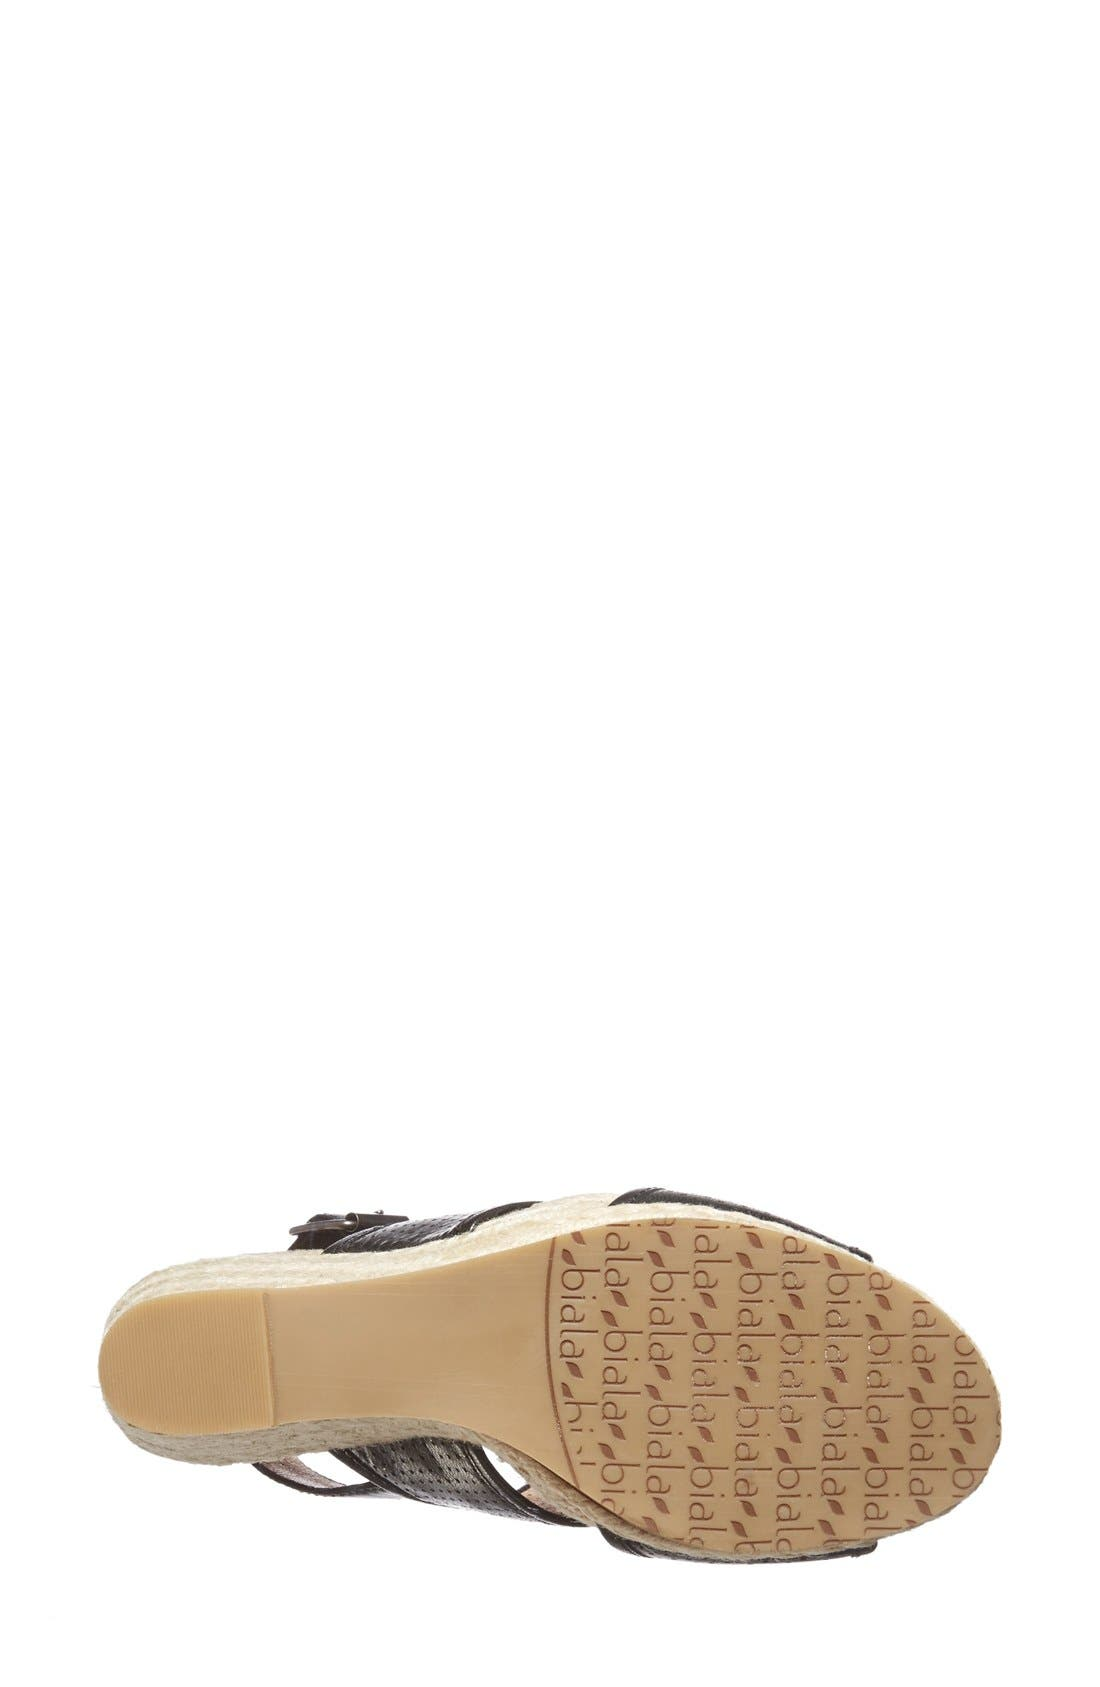 'Joyce' Perforated Espadrille Wedge Sandal,                             Alternate thumbnail 4, color,                             001